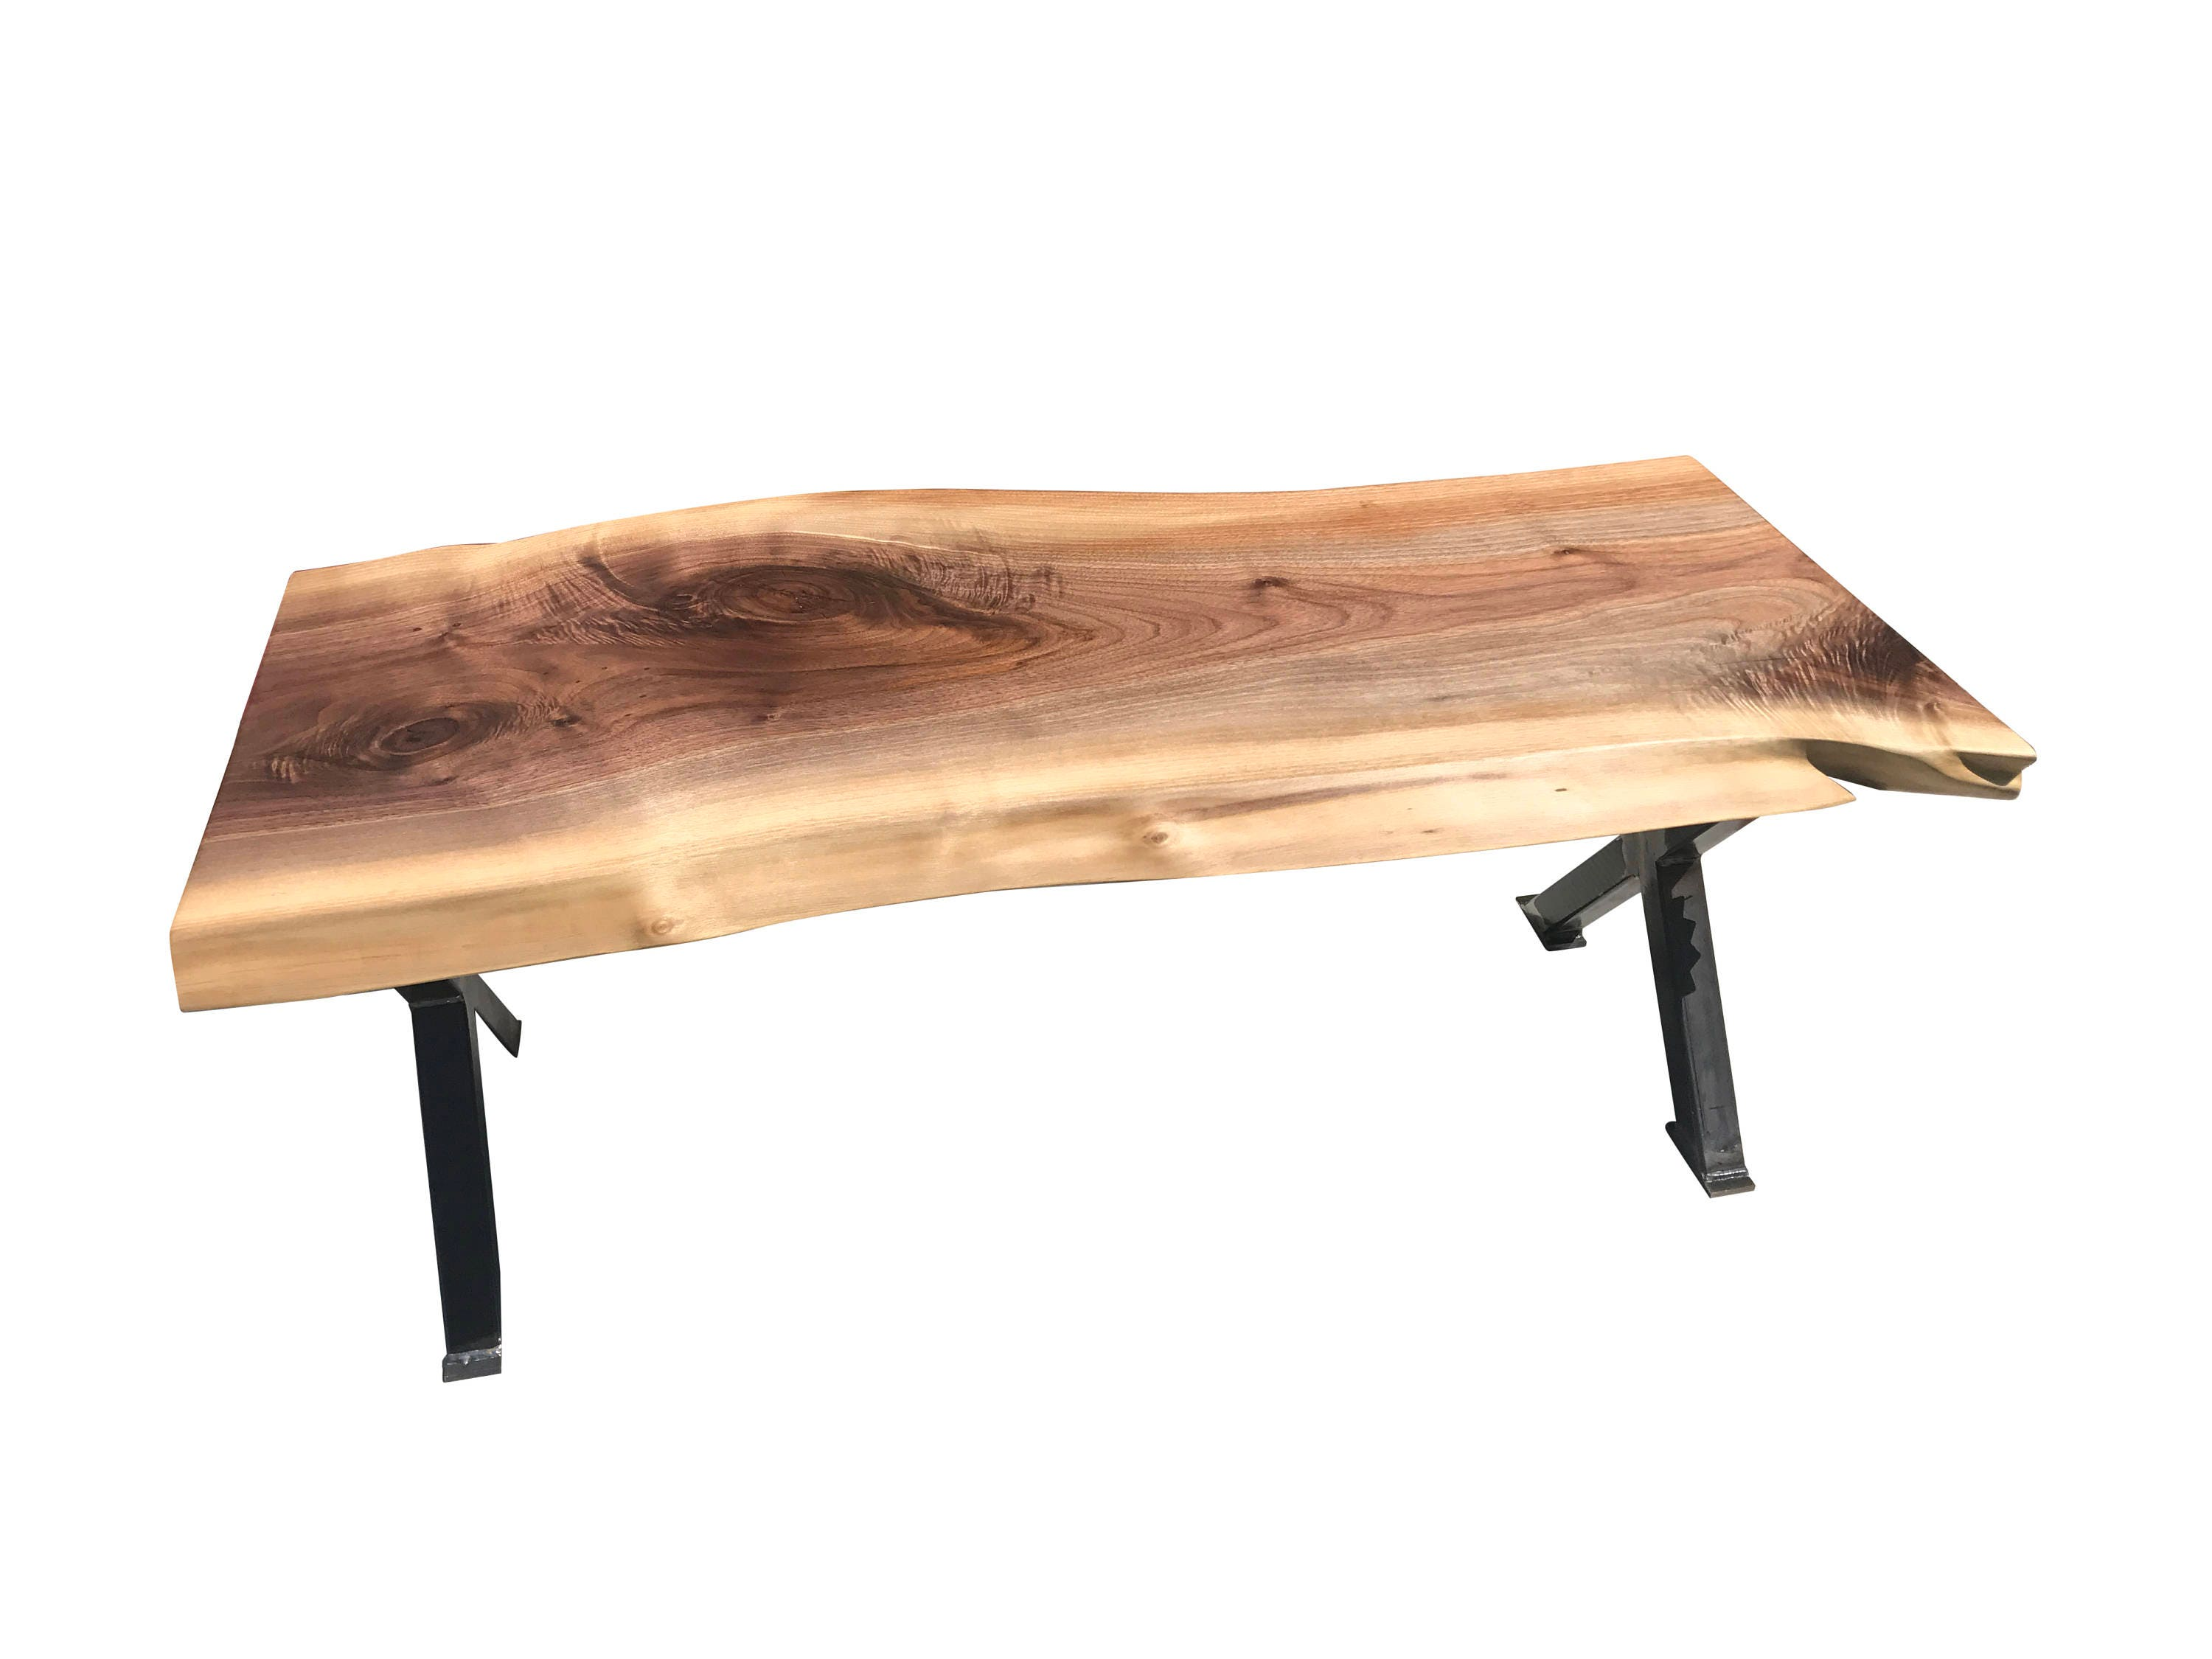 Live Edge Black Walnut bench with Industrial X style Legs, Unique bench ships free